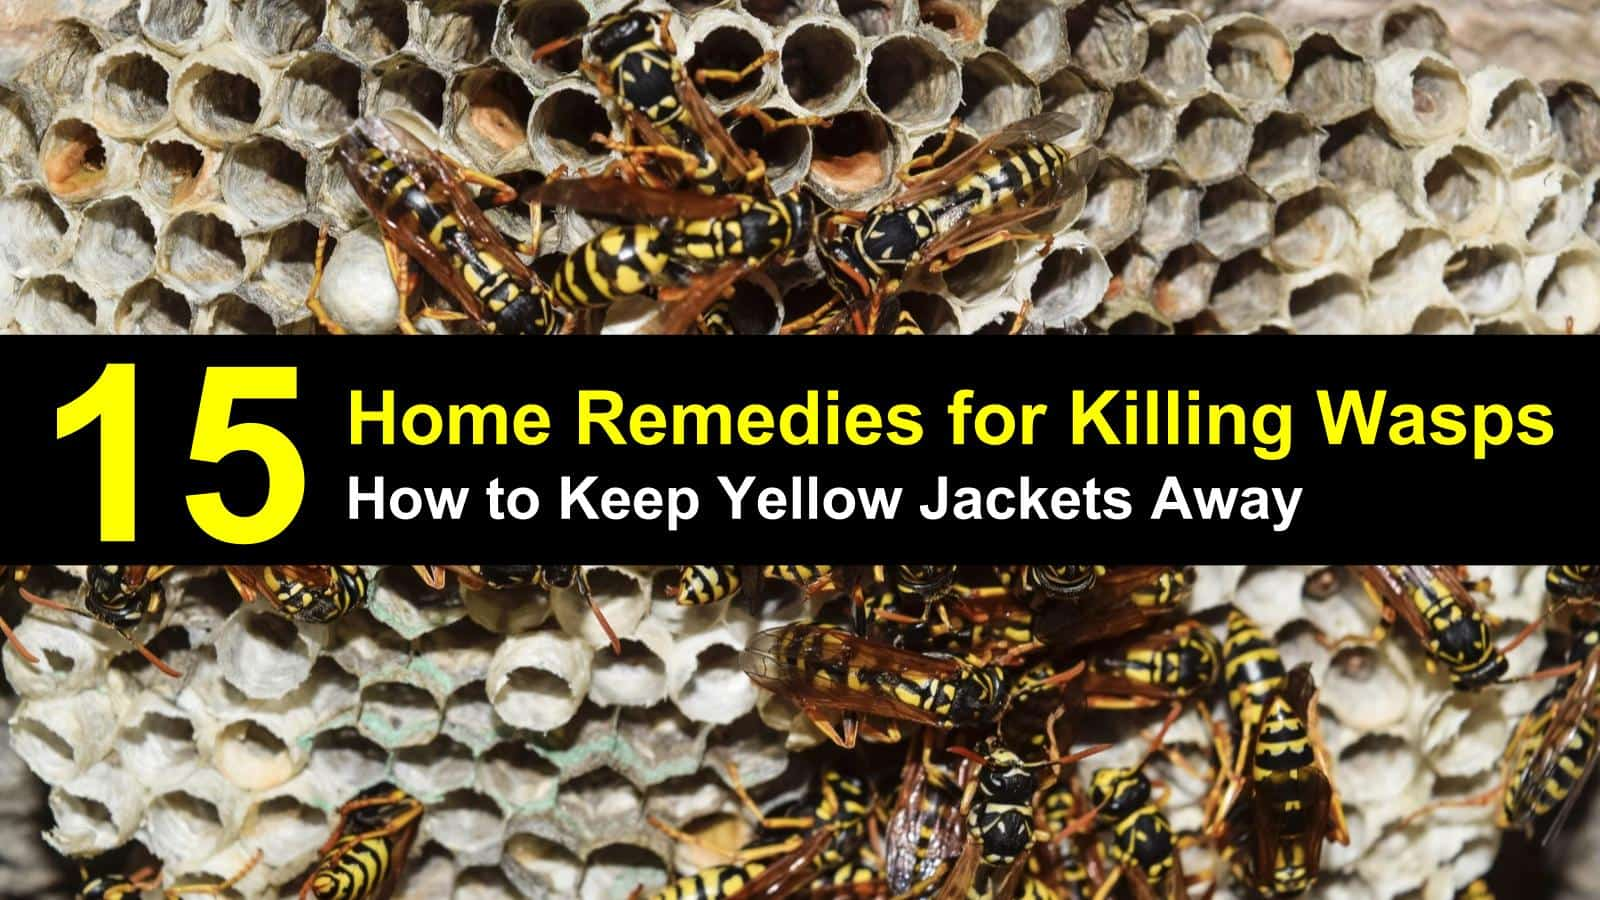 how to keep yellow jackets away titleimg